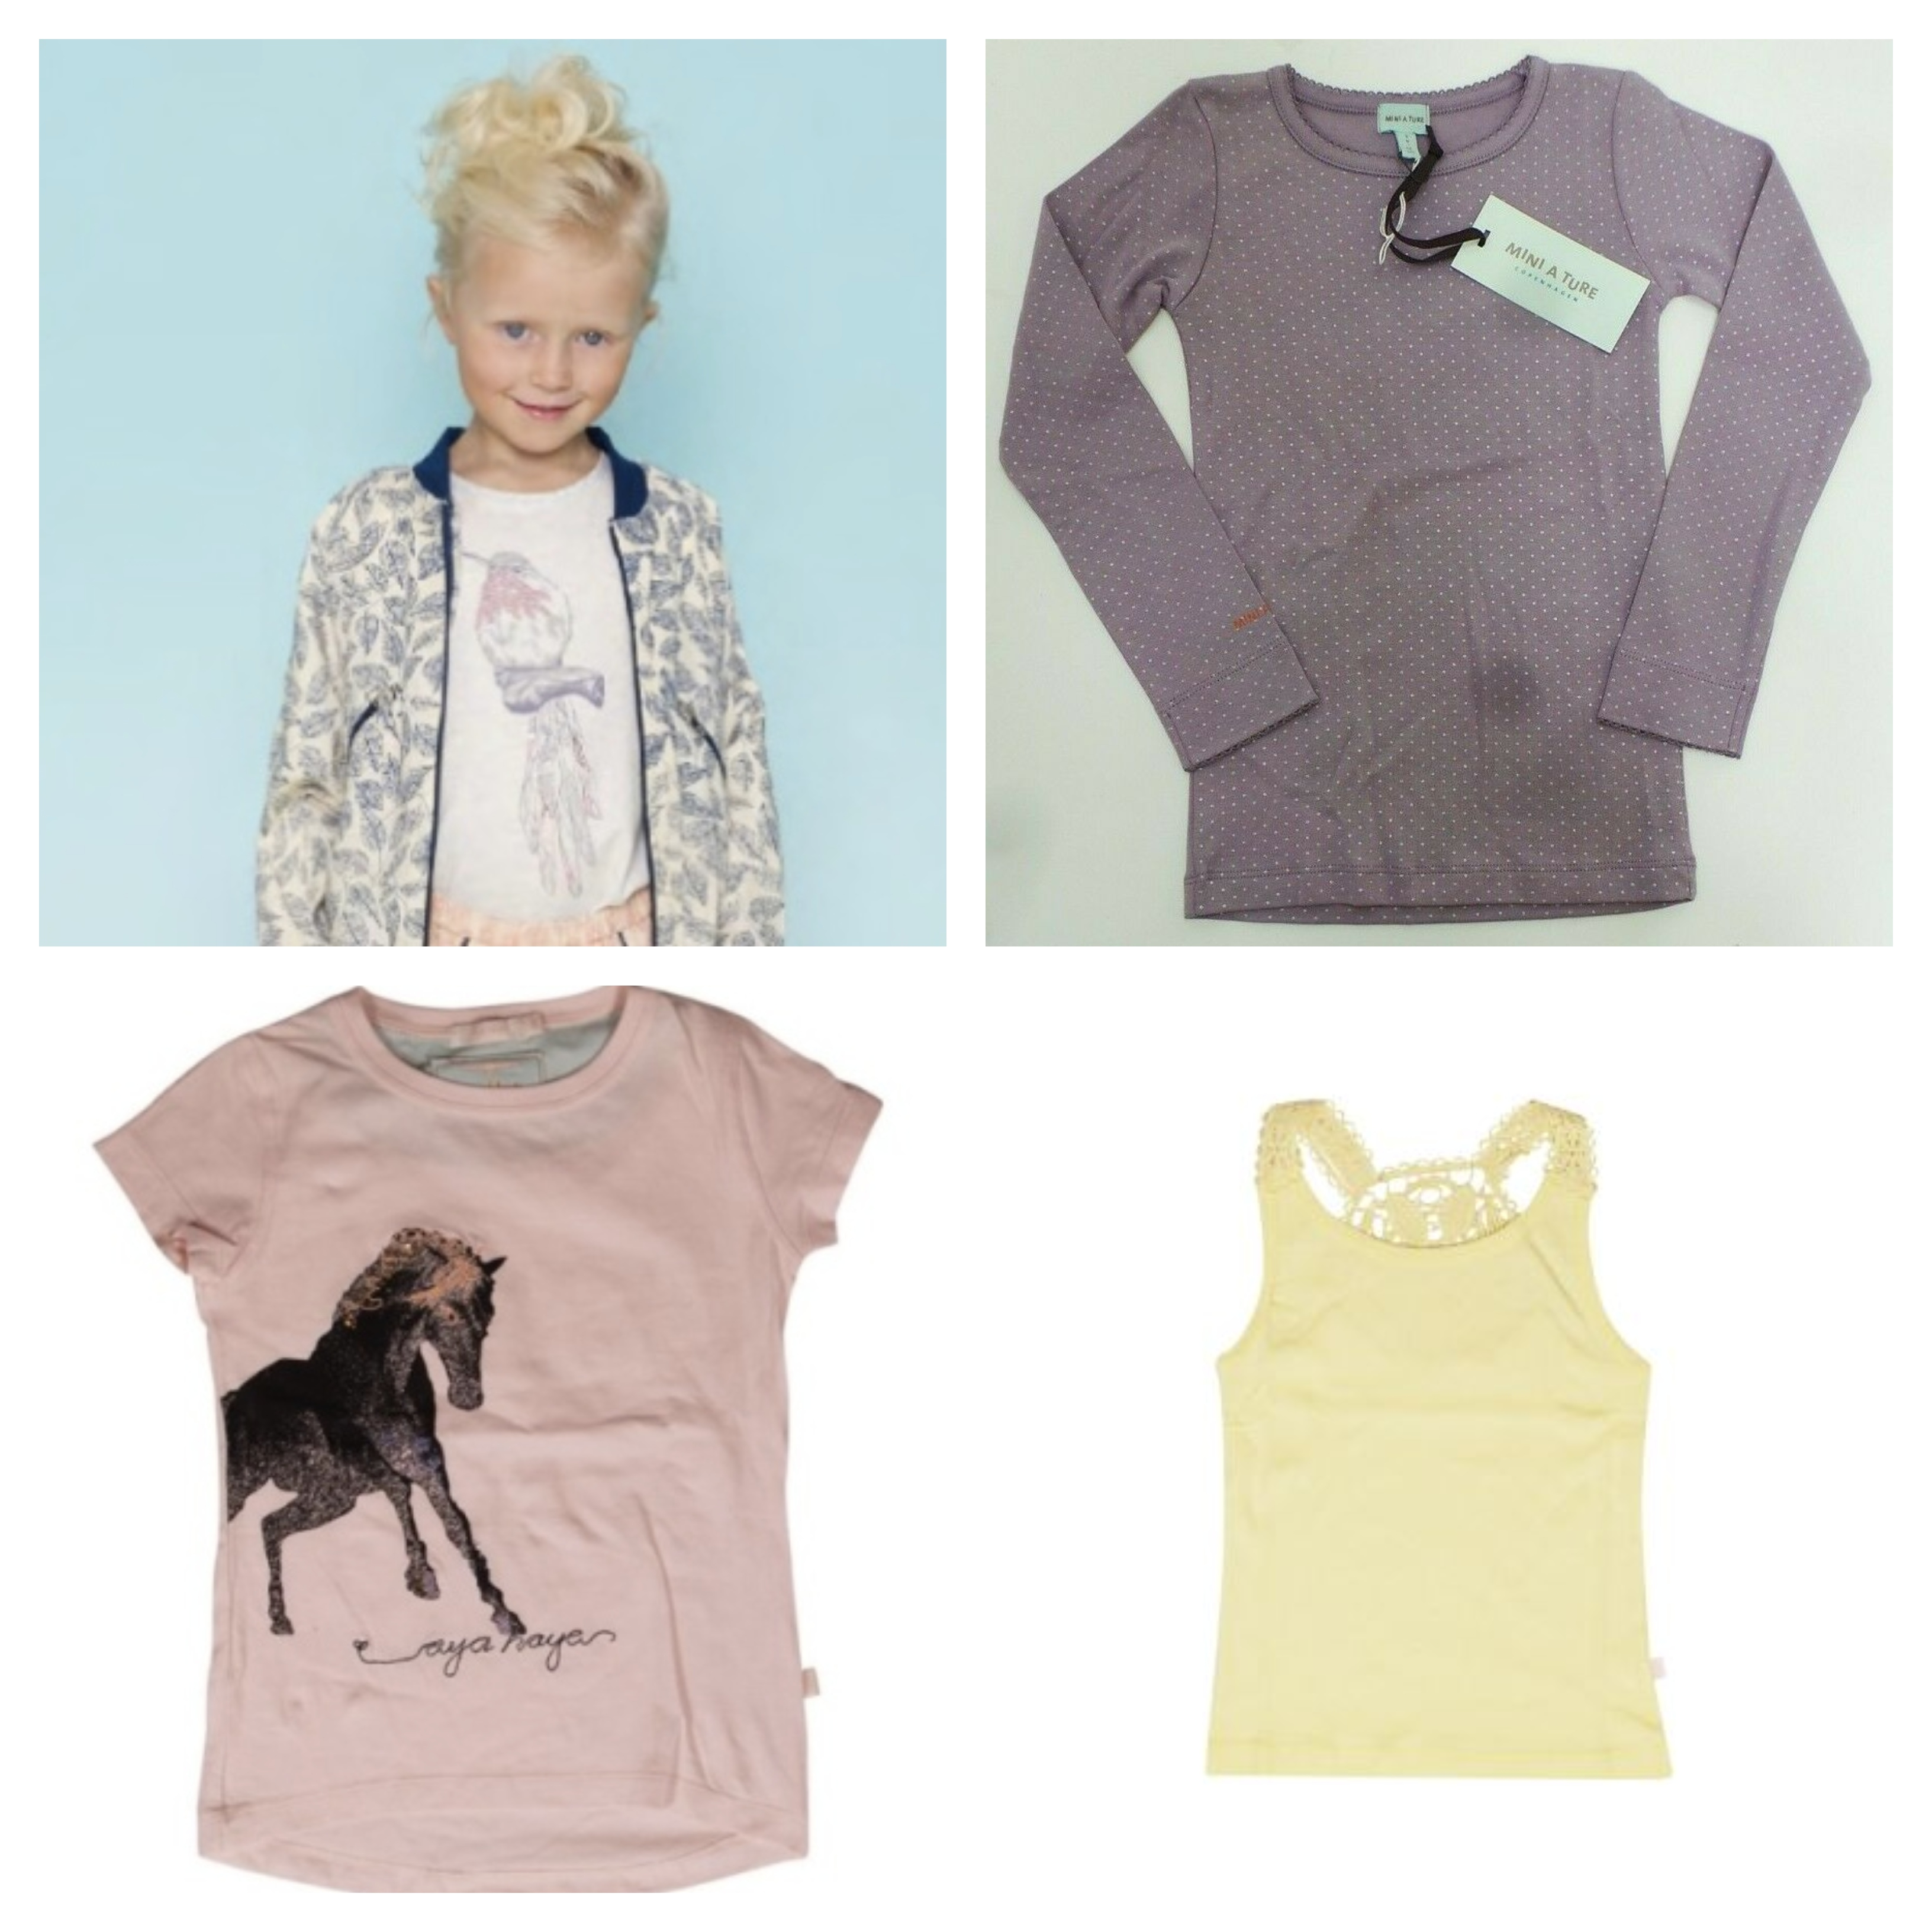 One Off Joblot Of 18 Girls T-shirts, Vests & Tops From Designers Aya Naya & Mini A Ture